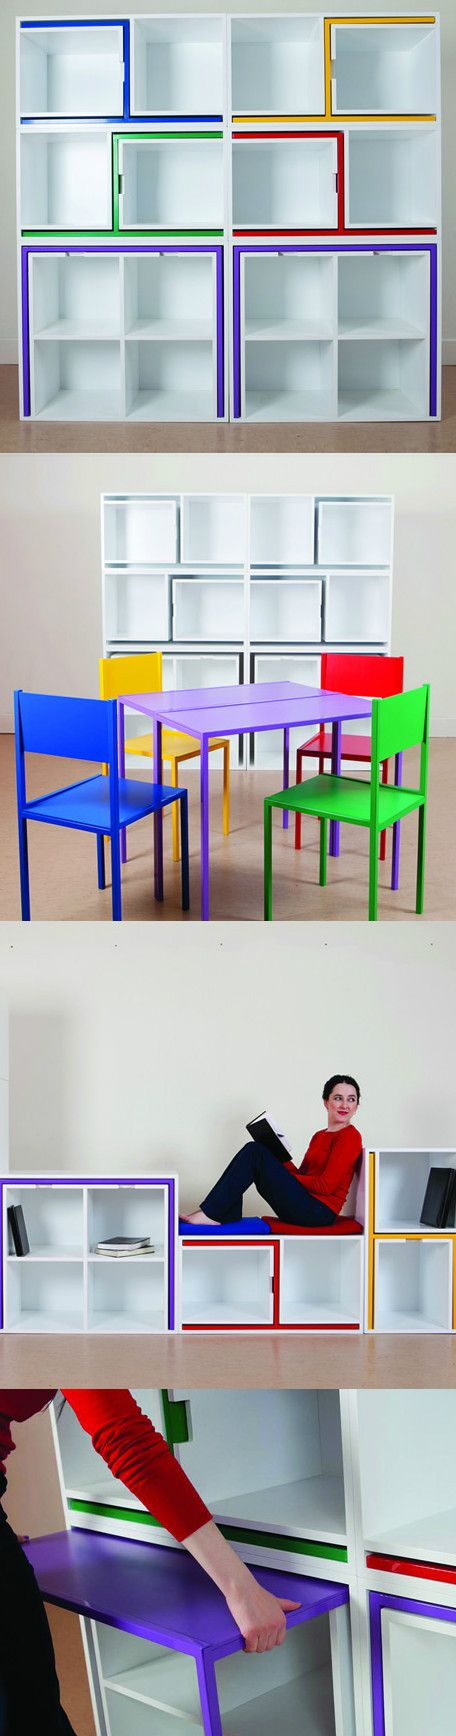 [Small Apartment Saver] Designed by Irish designer Orla Reynolds, this innovative furniture set comes with white shelves, two colorful tables and 4 chairs